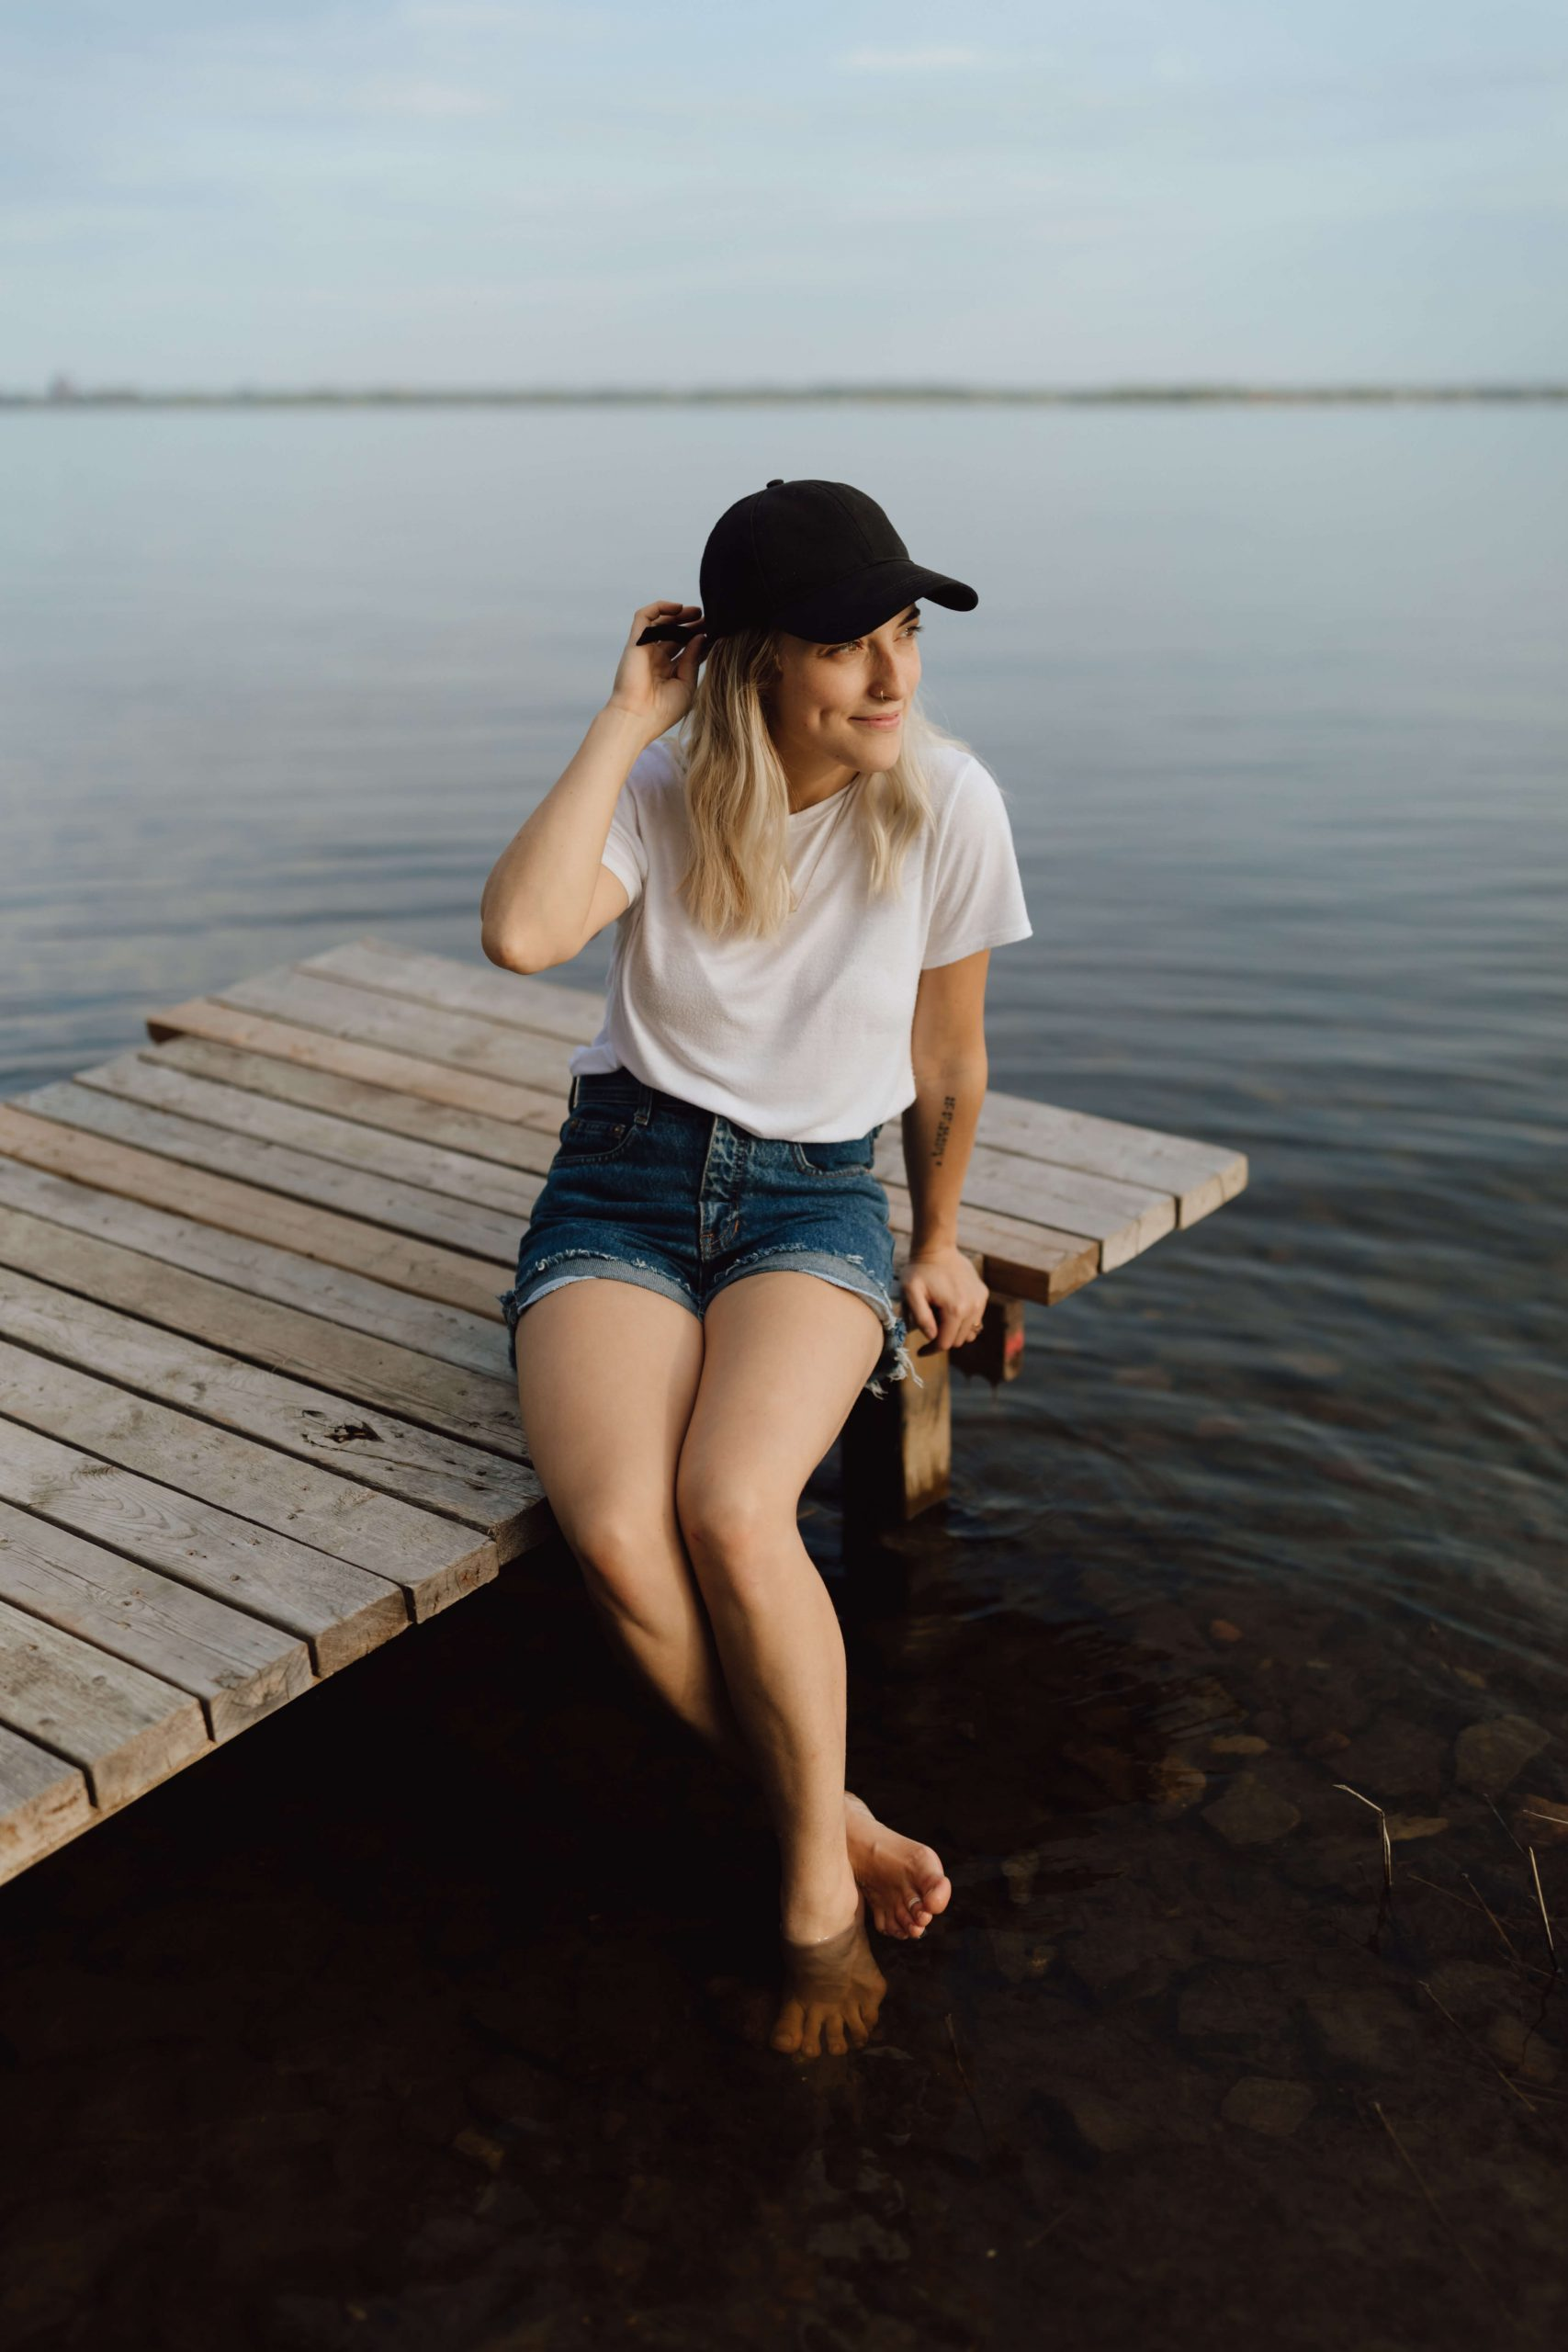 Sonia on a dock on the river Sonia V Photo -Documentary Style Candid Photographer - Ottawa Ontario Kemptville Destination Photographer - Authentic Colour Photography - Wedding Photographer - Branding Photographer - Small Business Headshots - Engagement Photos - Family Portraits - Lifestyle